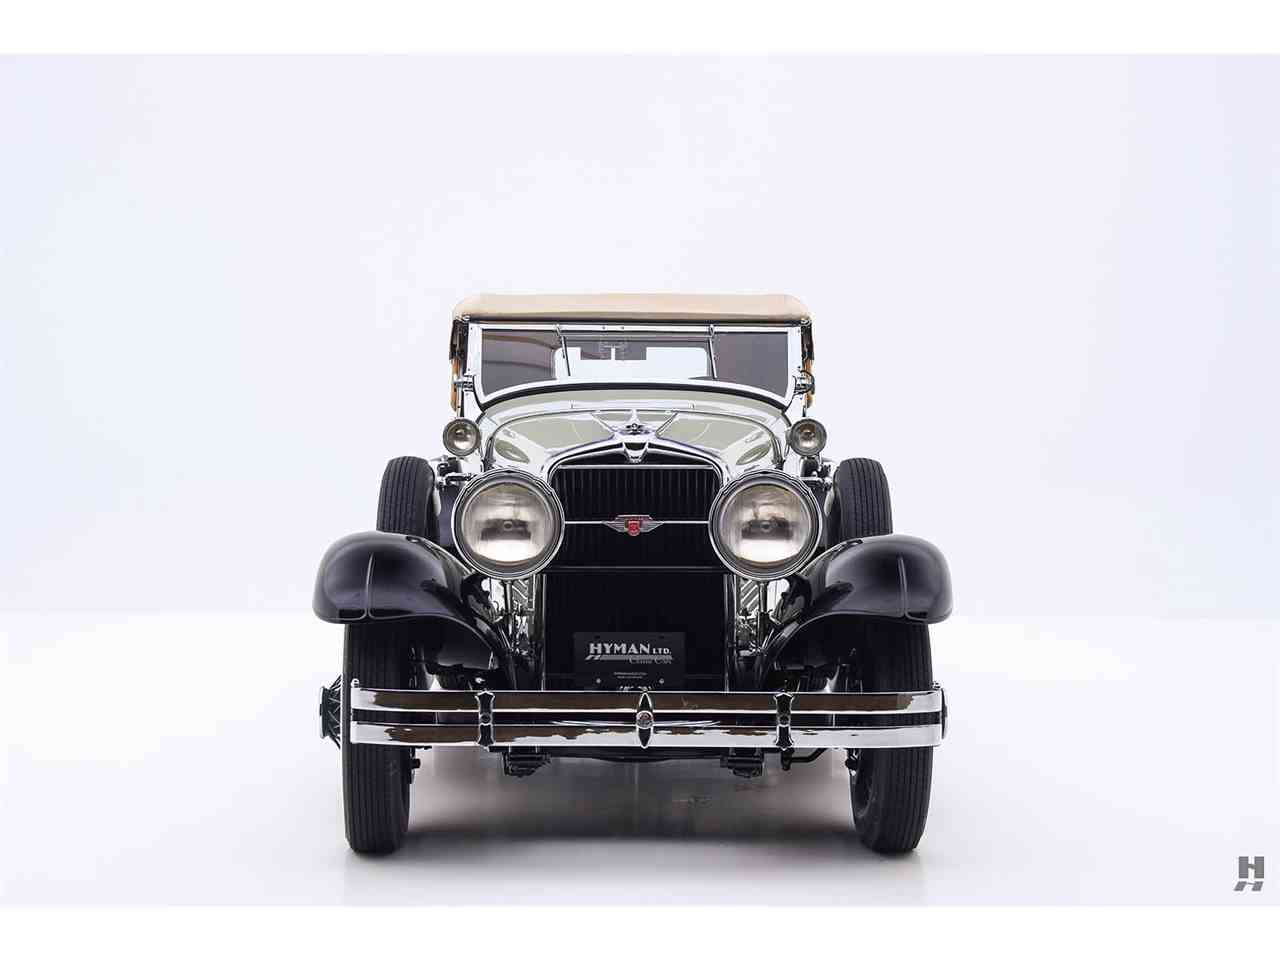 Large Picture of '29 Stutz Blackhawk located in Missouri - $137,500.00 - JKFP